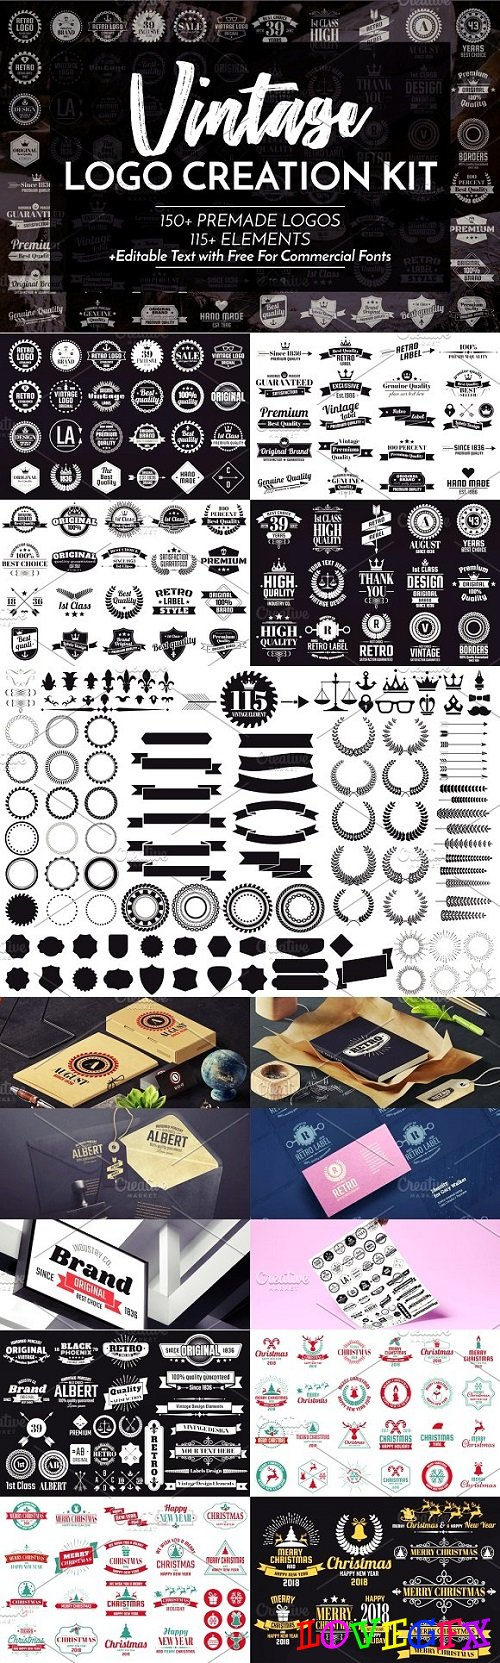 Vintage Logo Creation Kit 2023446